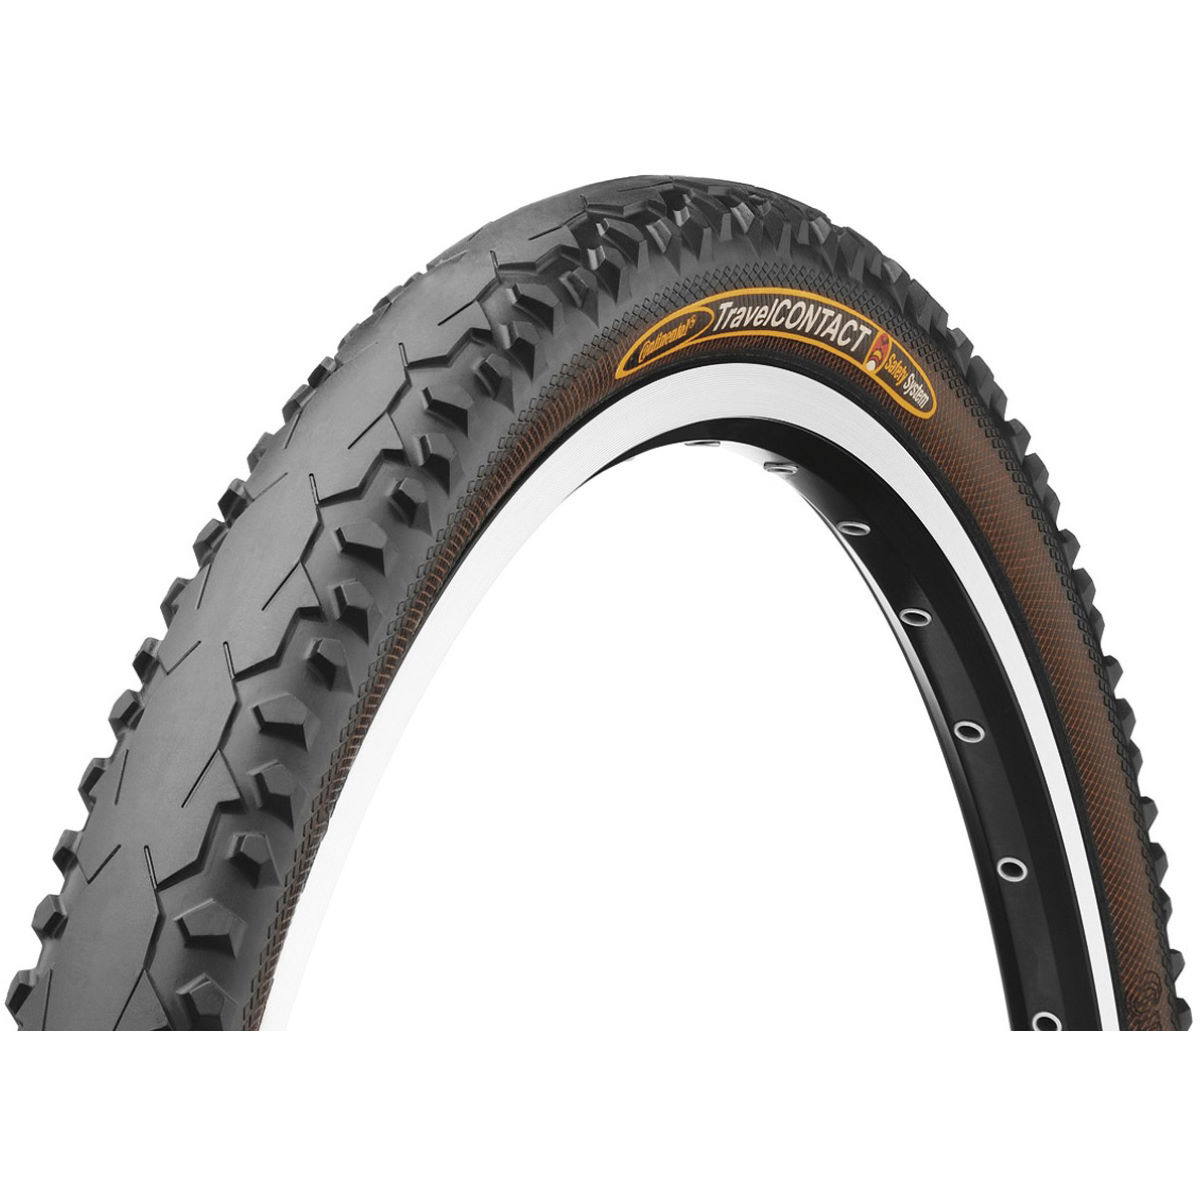 Continental travel contact road tyre hybrid and touring tyres black notset 122293 5 pack 0